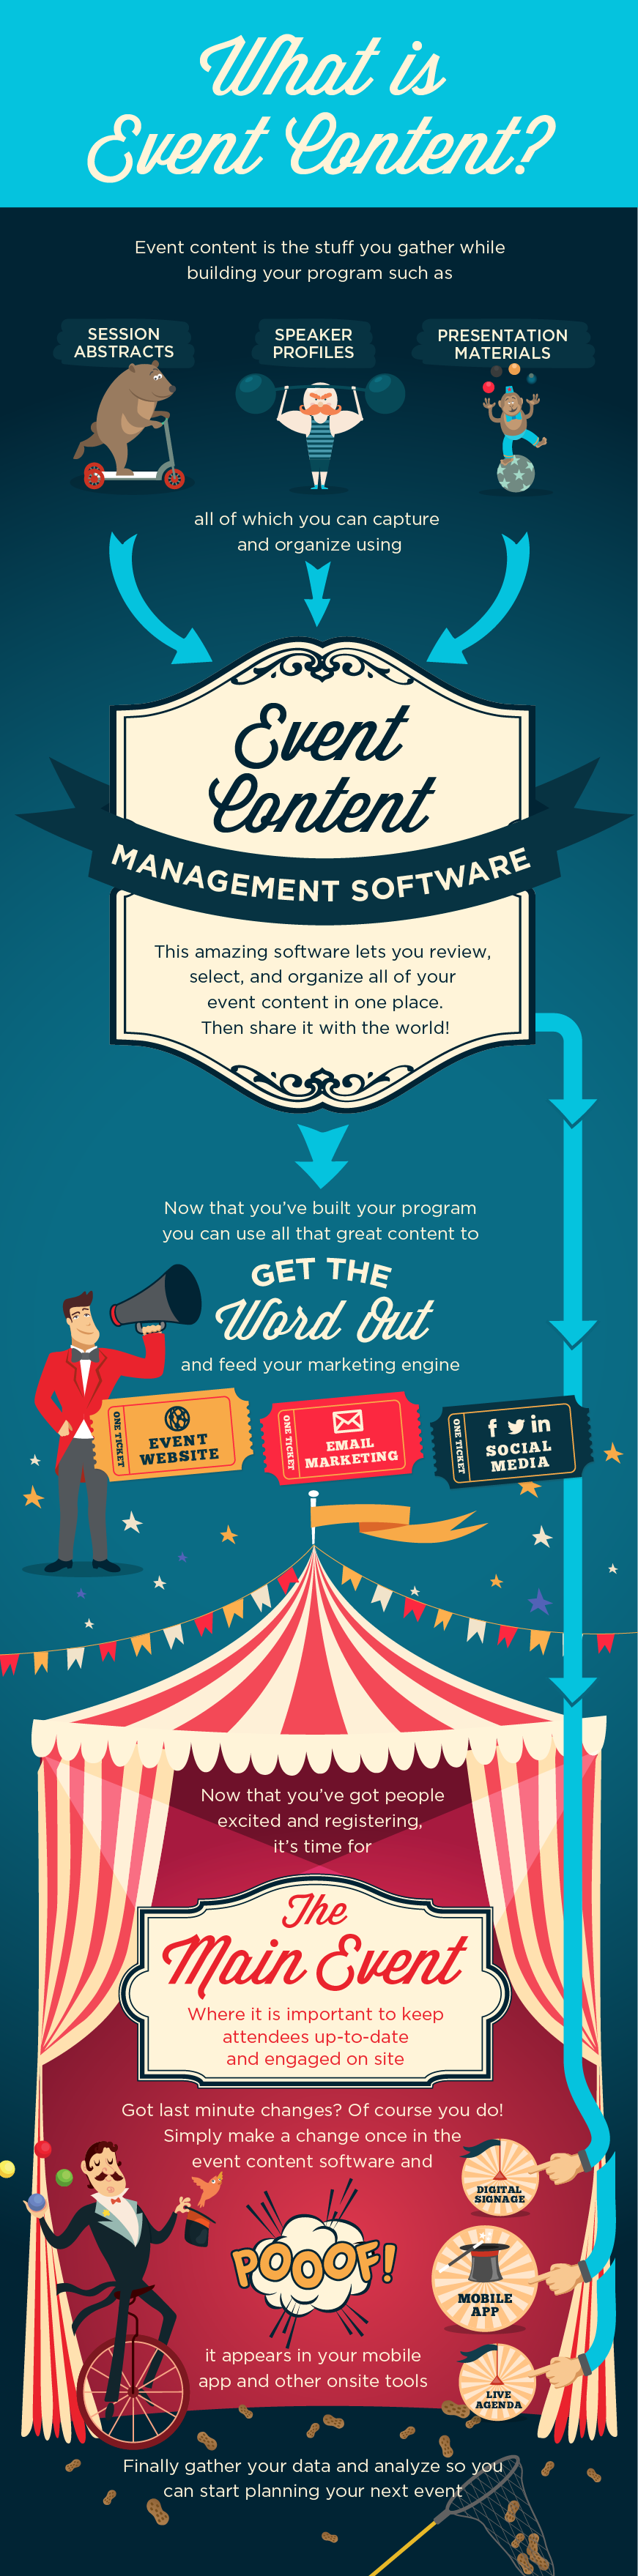 Hubb - What Is Event Content Infographic